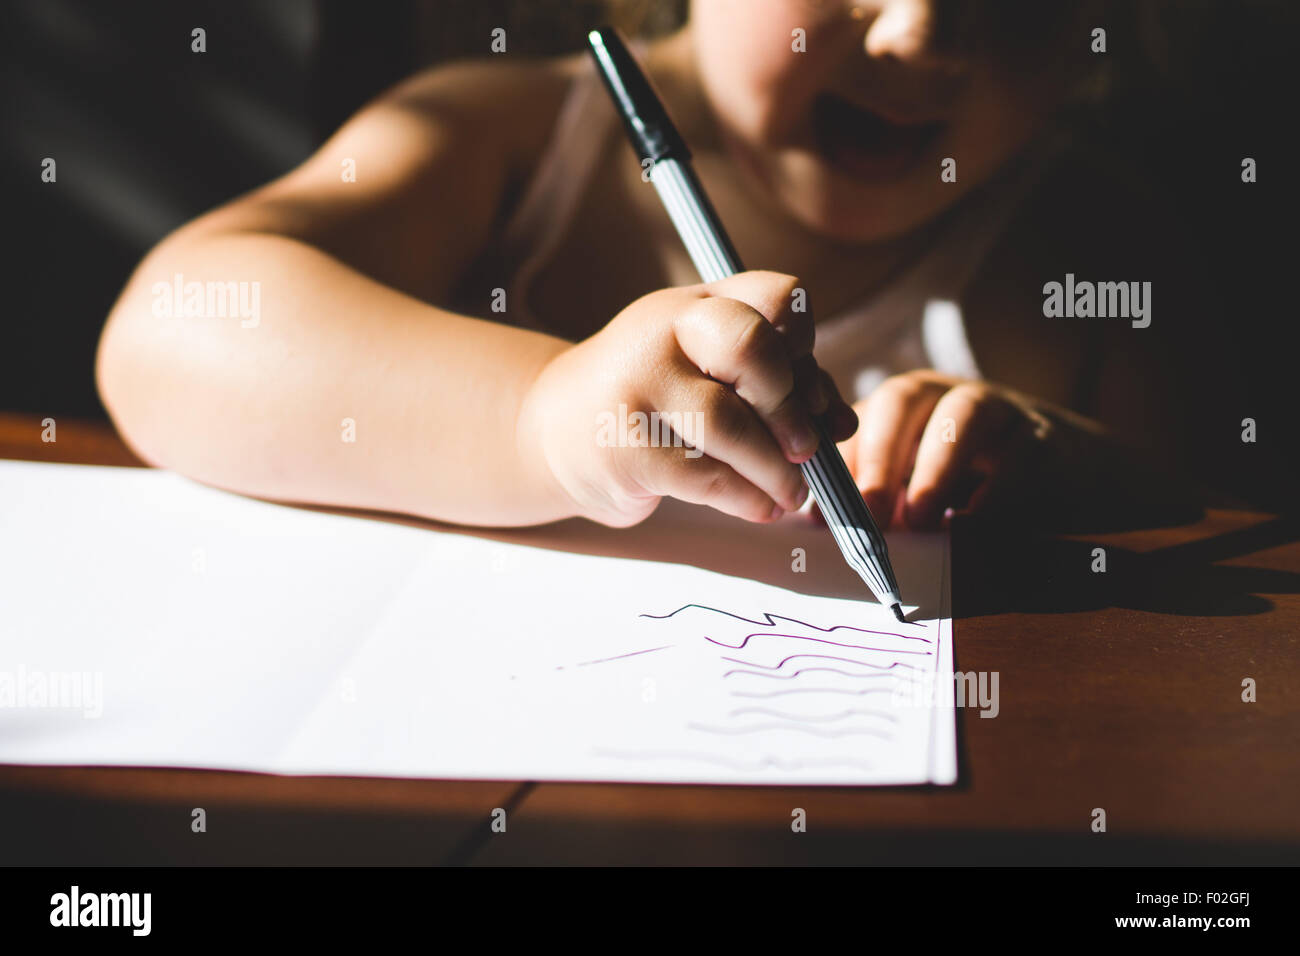 Close-up of a girl drawing - Stock Image